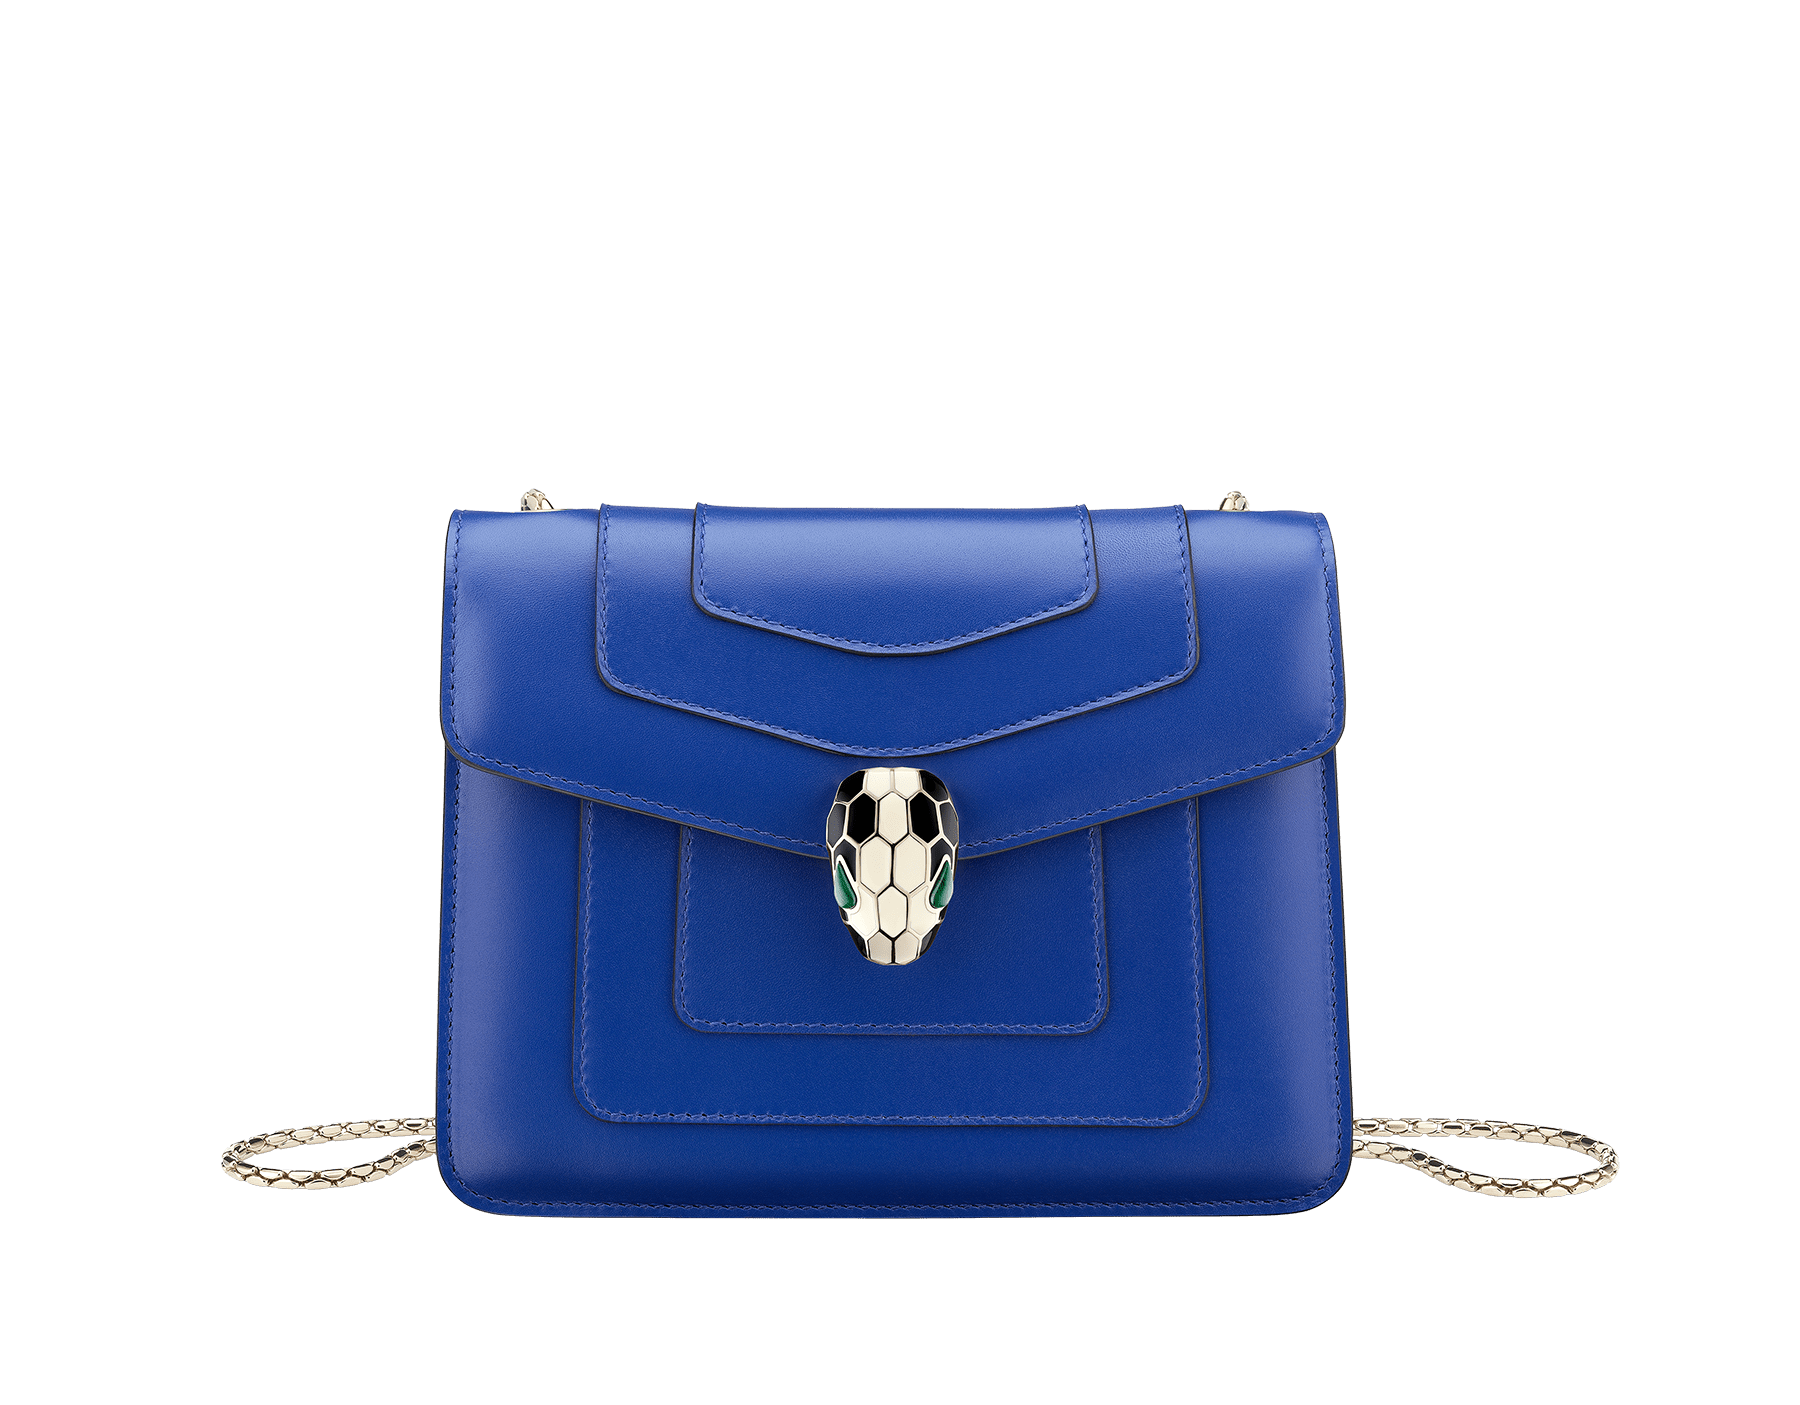 """Serpenti Forever "" crossbody bag in cobalt tourmaline calf leather. Iconic snakehead closure in light gold plated brass enriched with black and white enamel and green malachite eyes 287012 image 1"